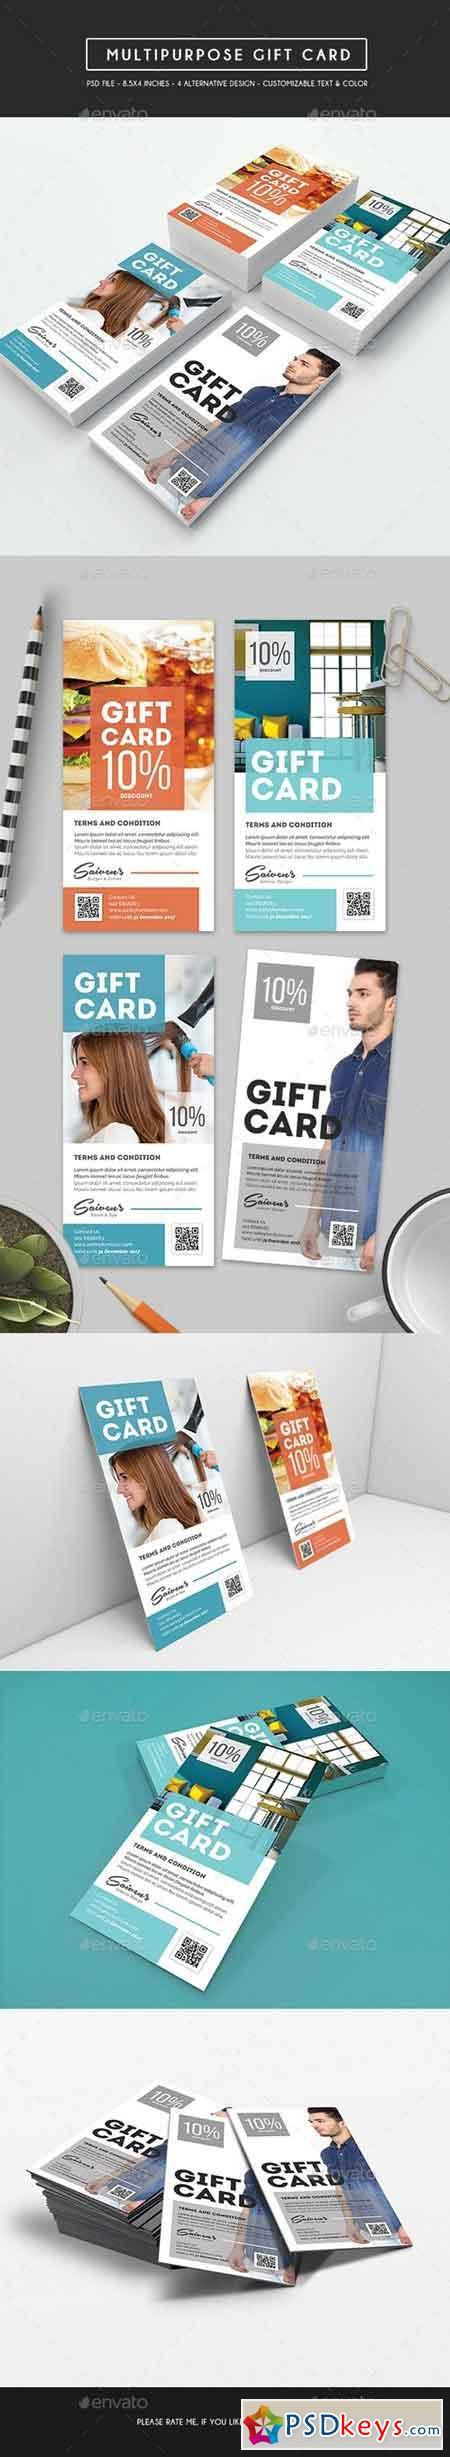 Multipurpose Voucher Gift Card 17211490